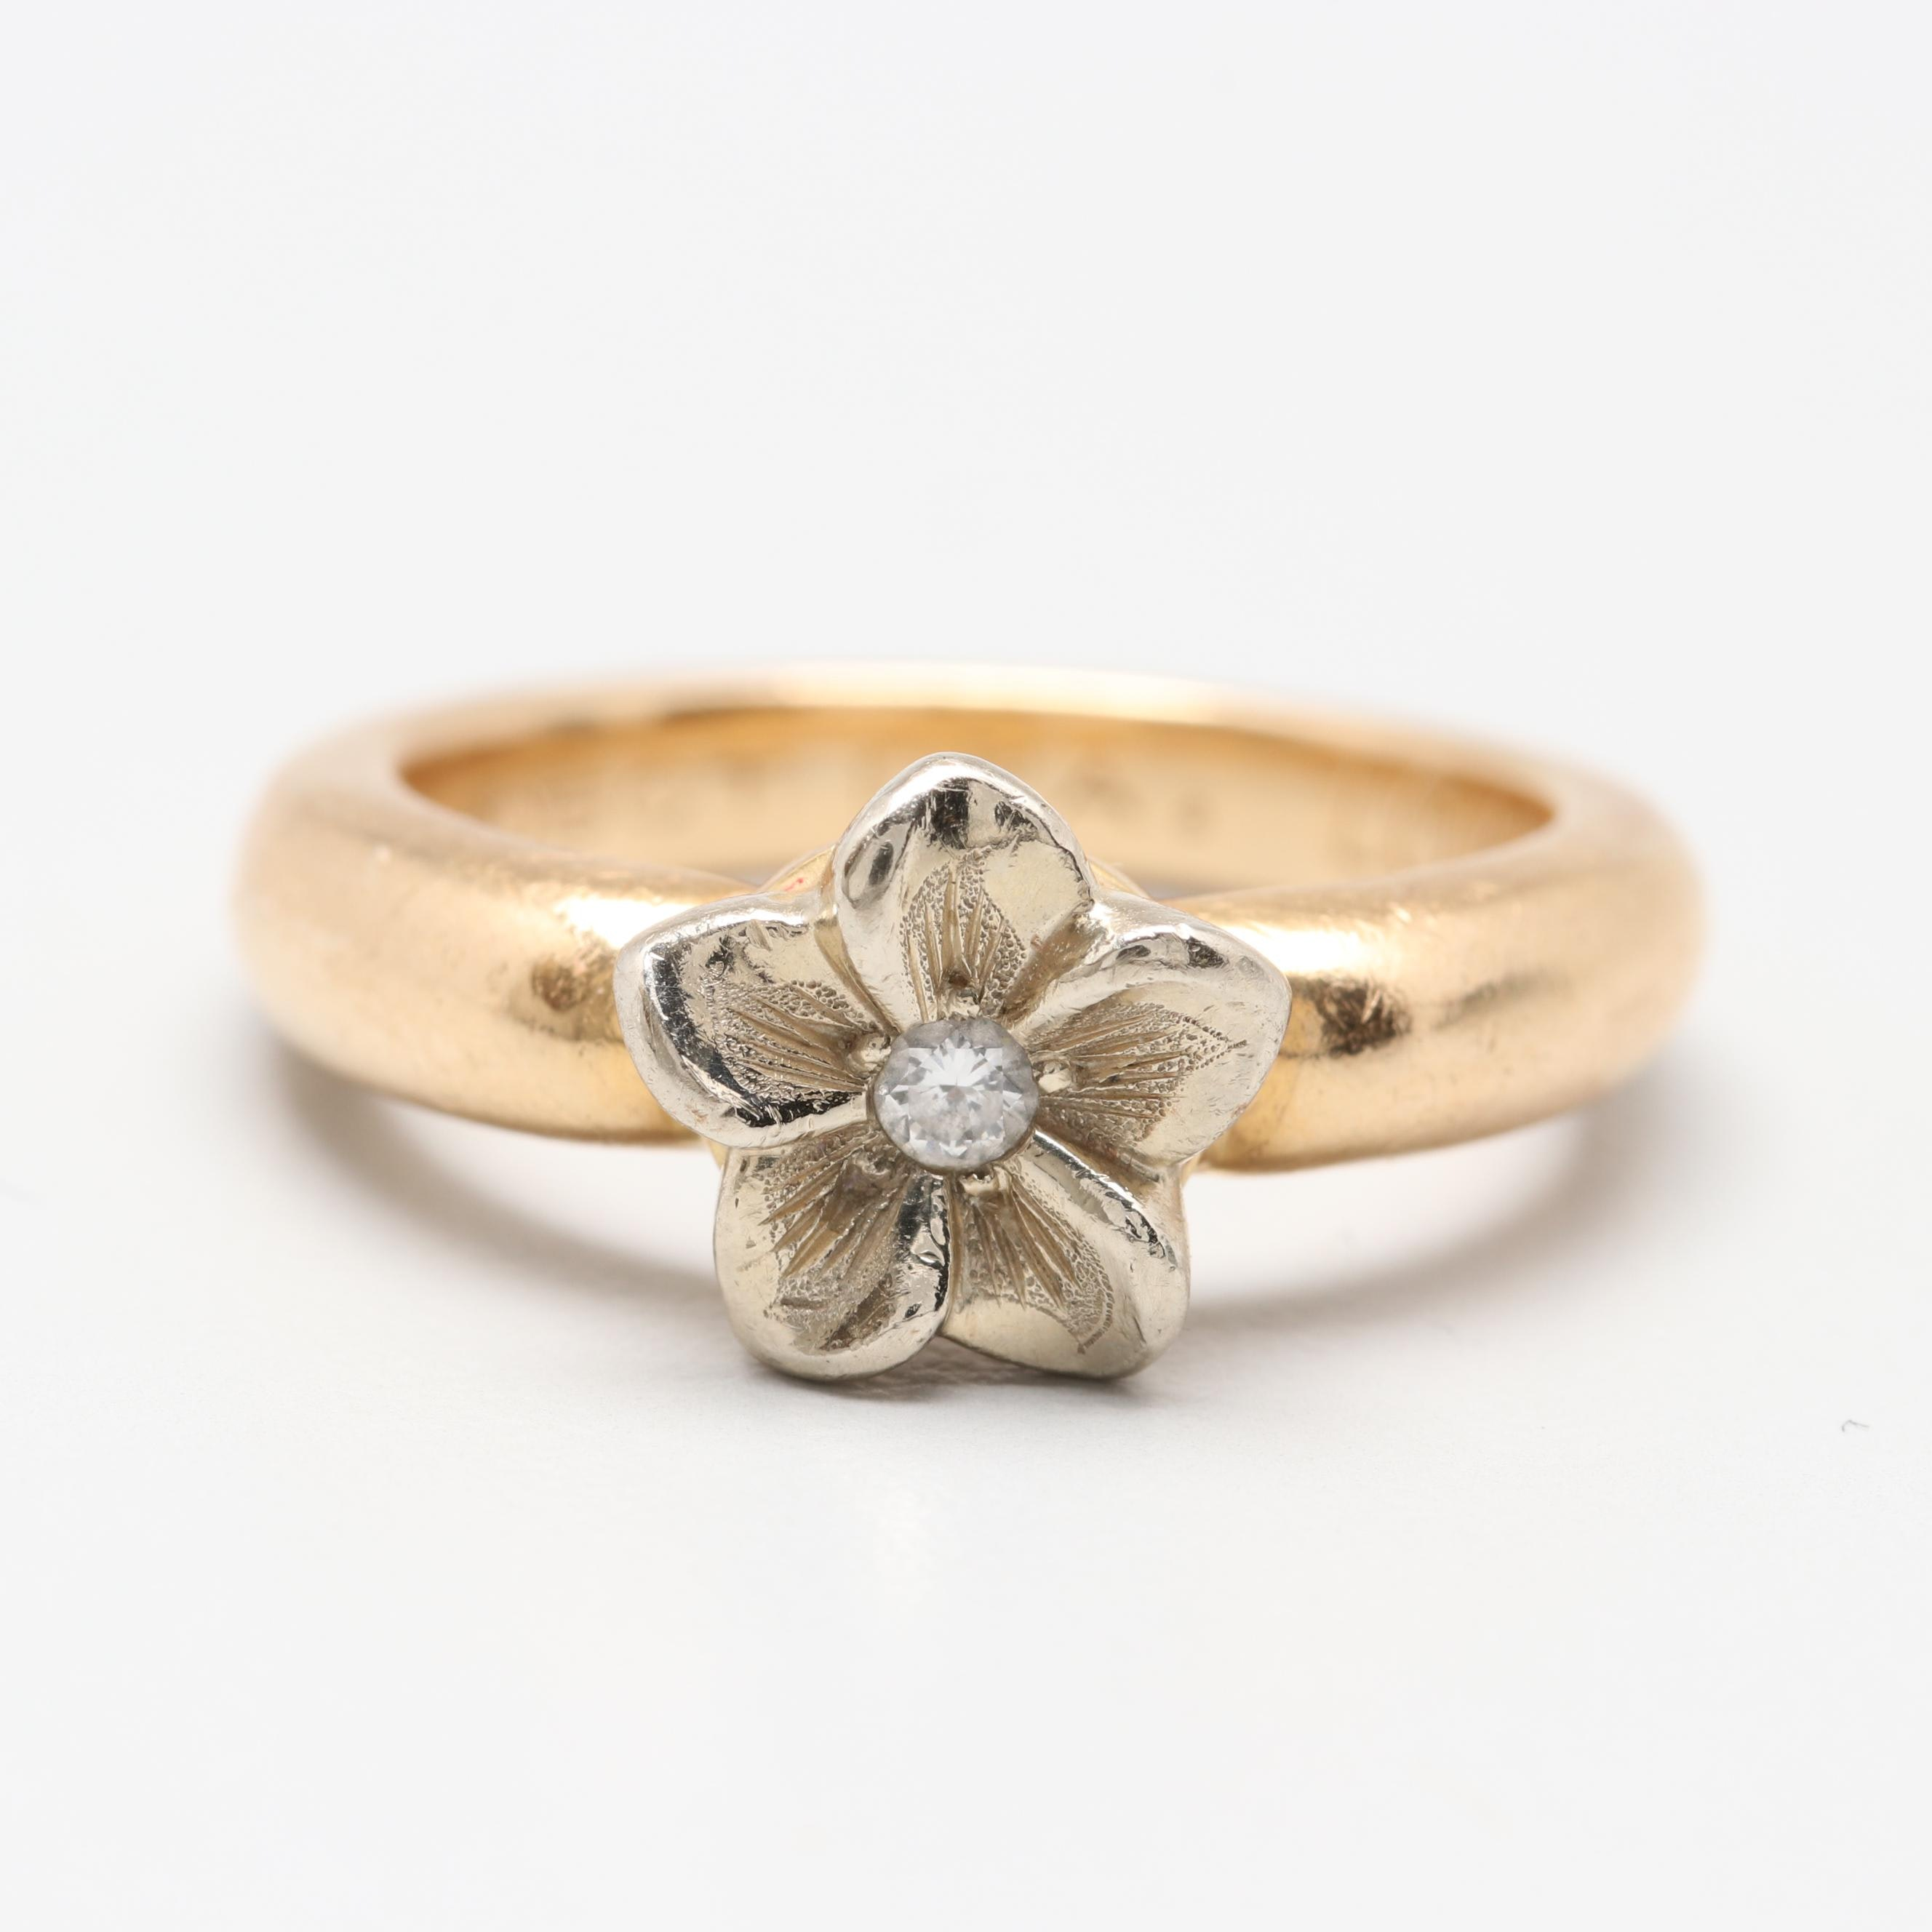 14K White and Yellow Gold Diamond Floral Ring